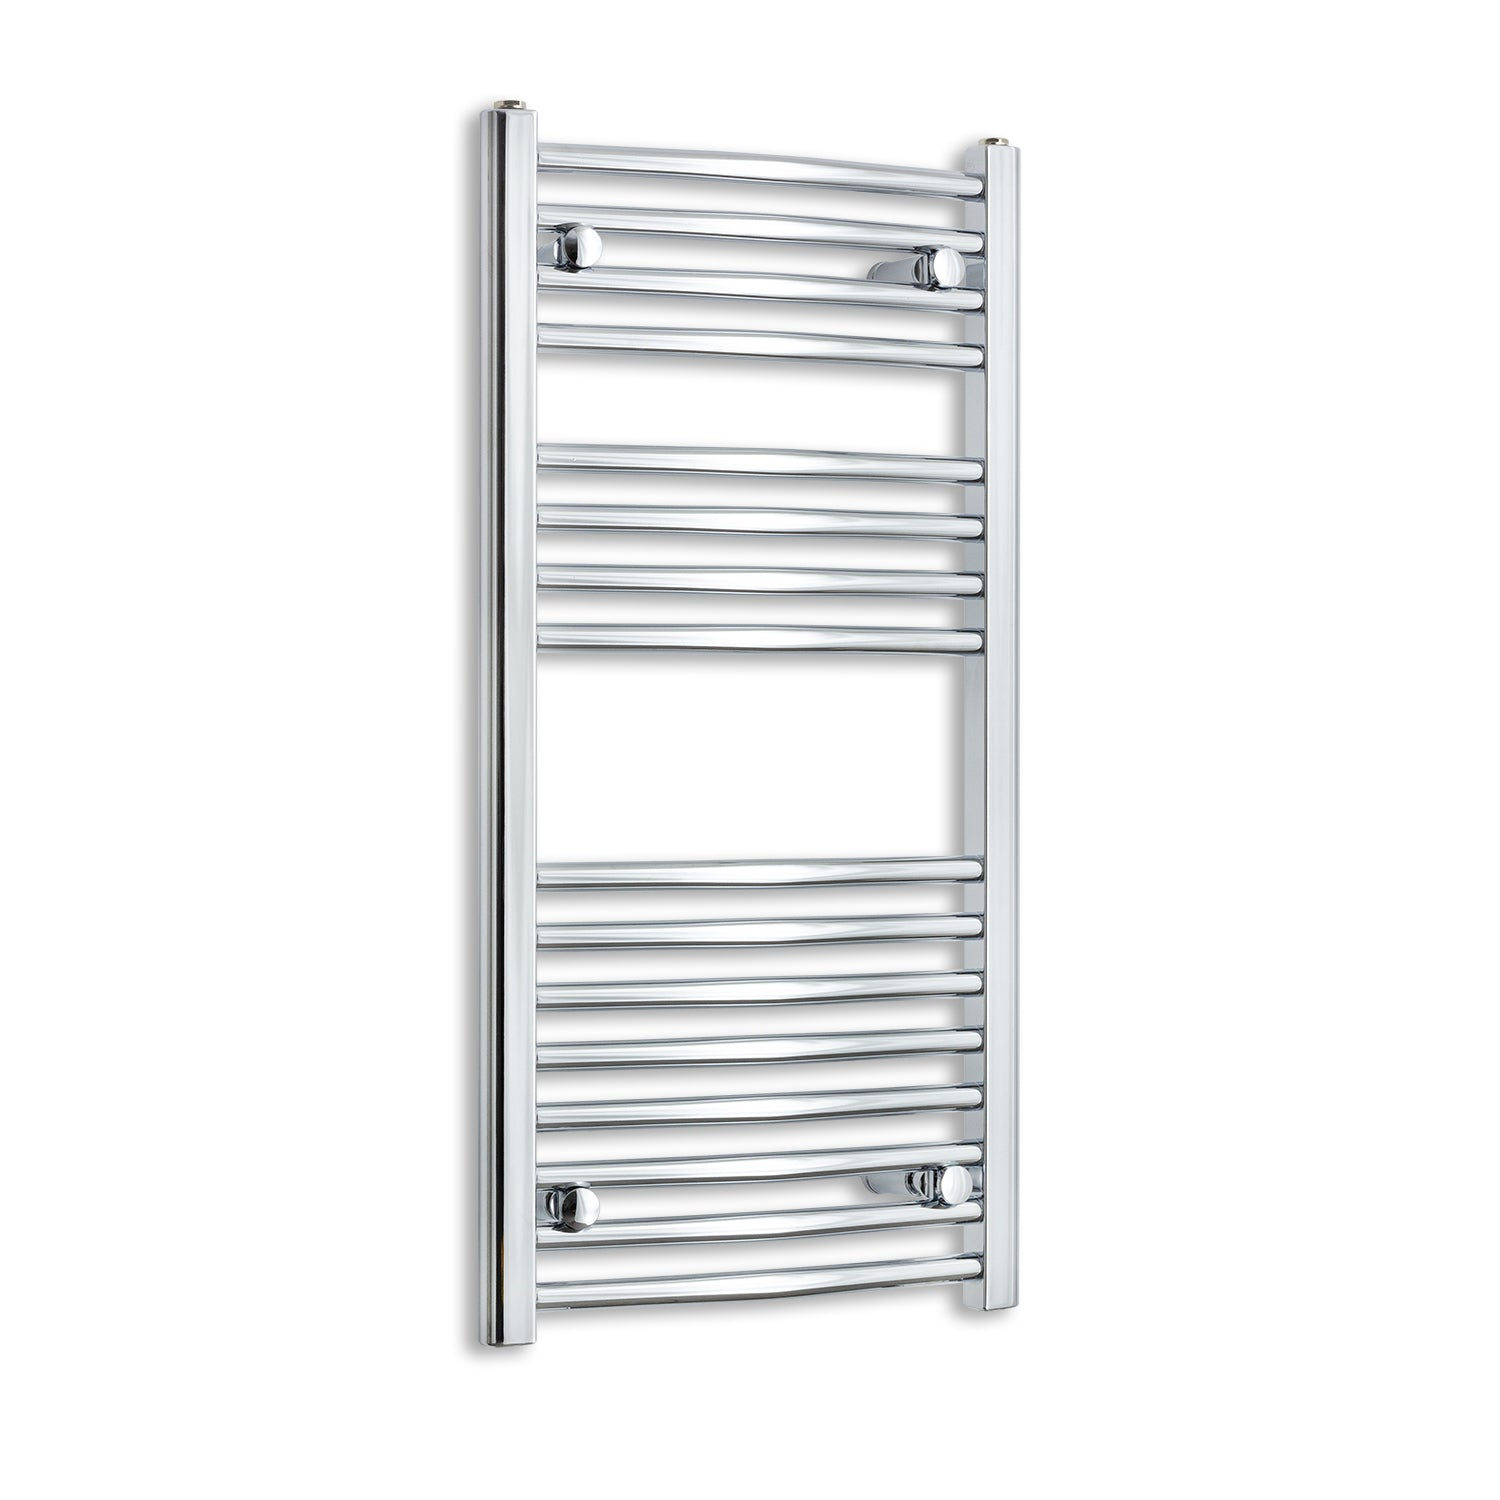 450mm Wide 900mm High Chrome Towel Rail Radiator